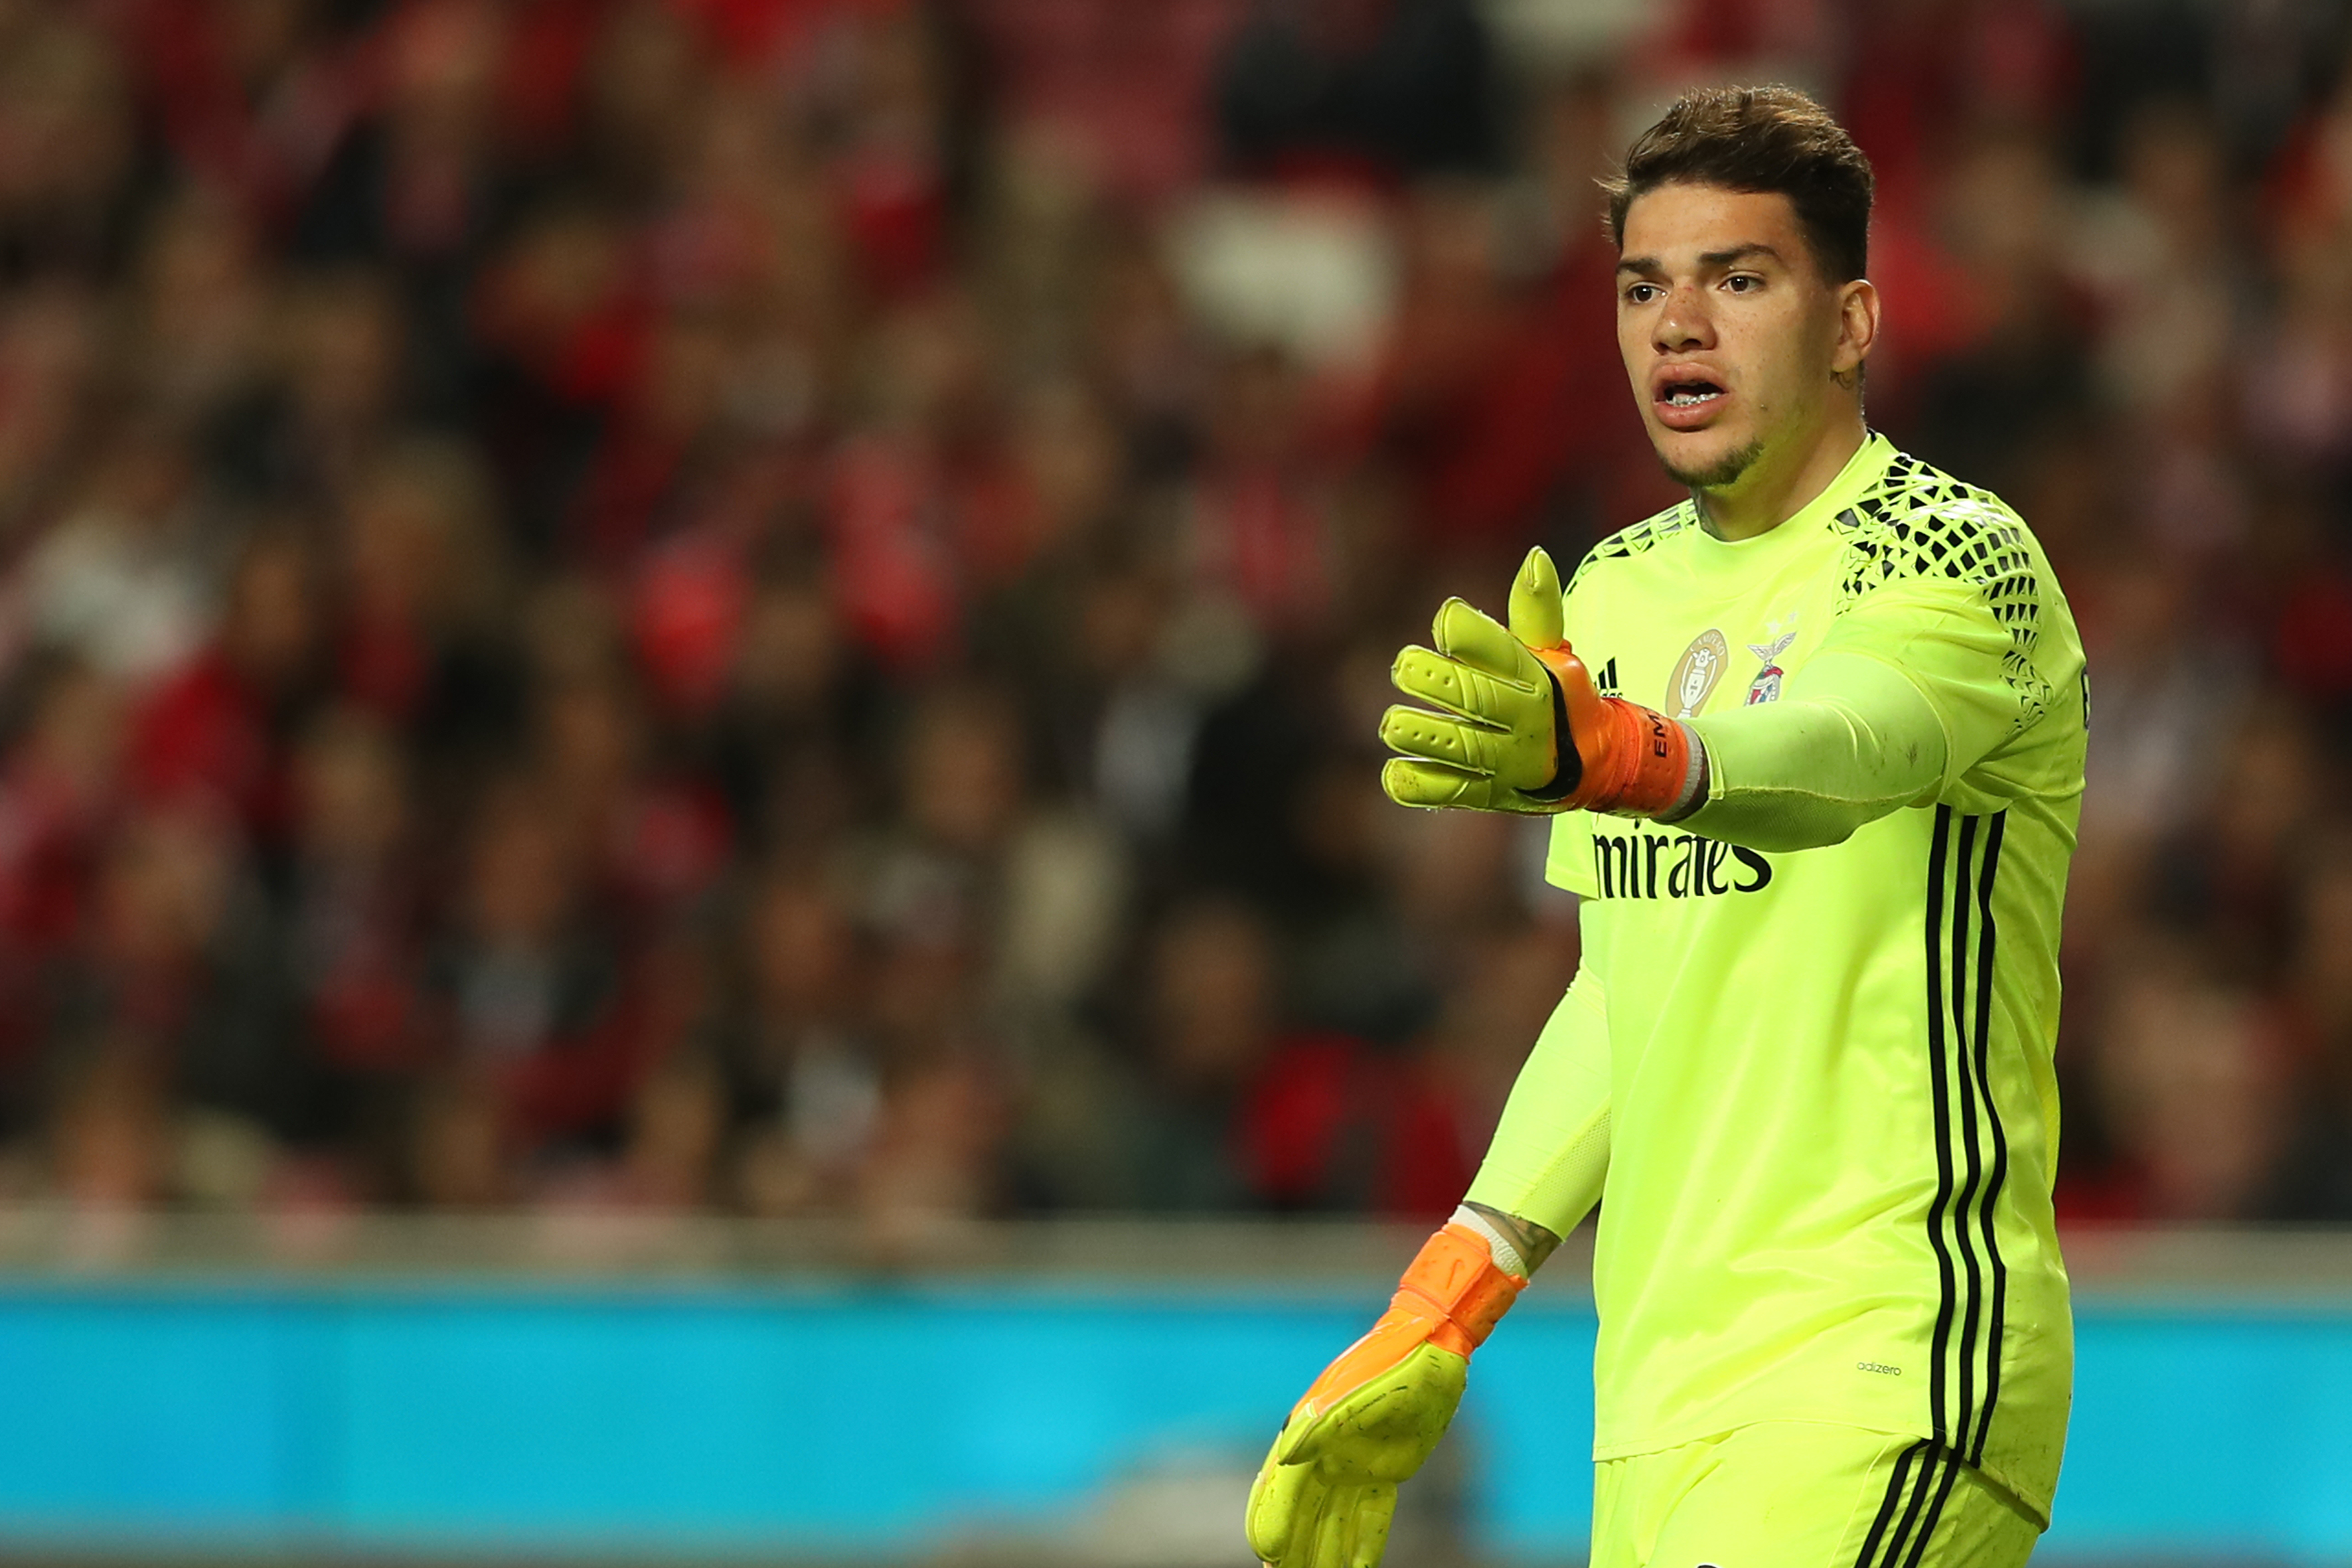 Manchester City told goalkeeping ace Ederson is not for sale